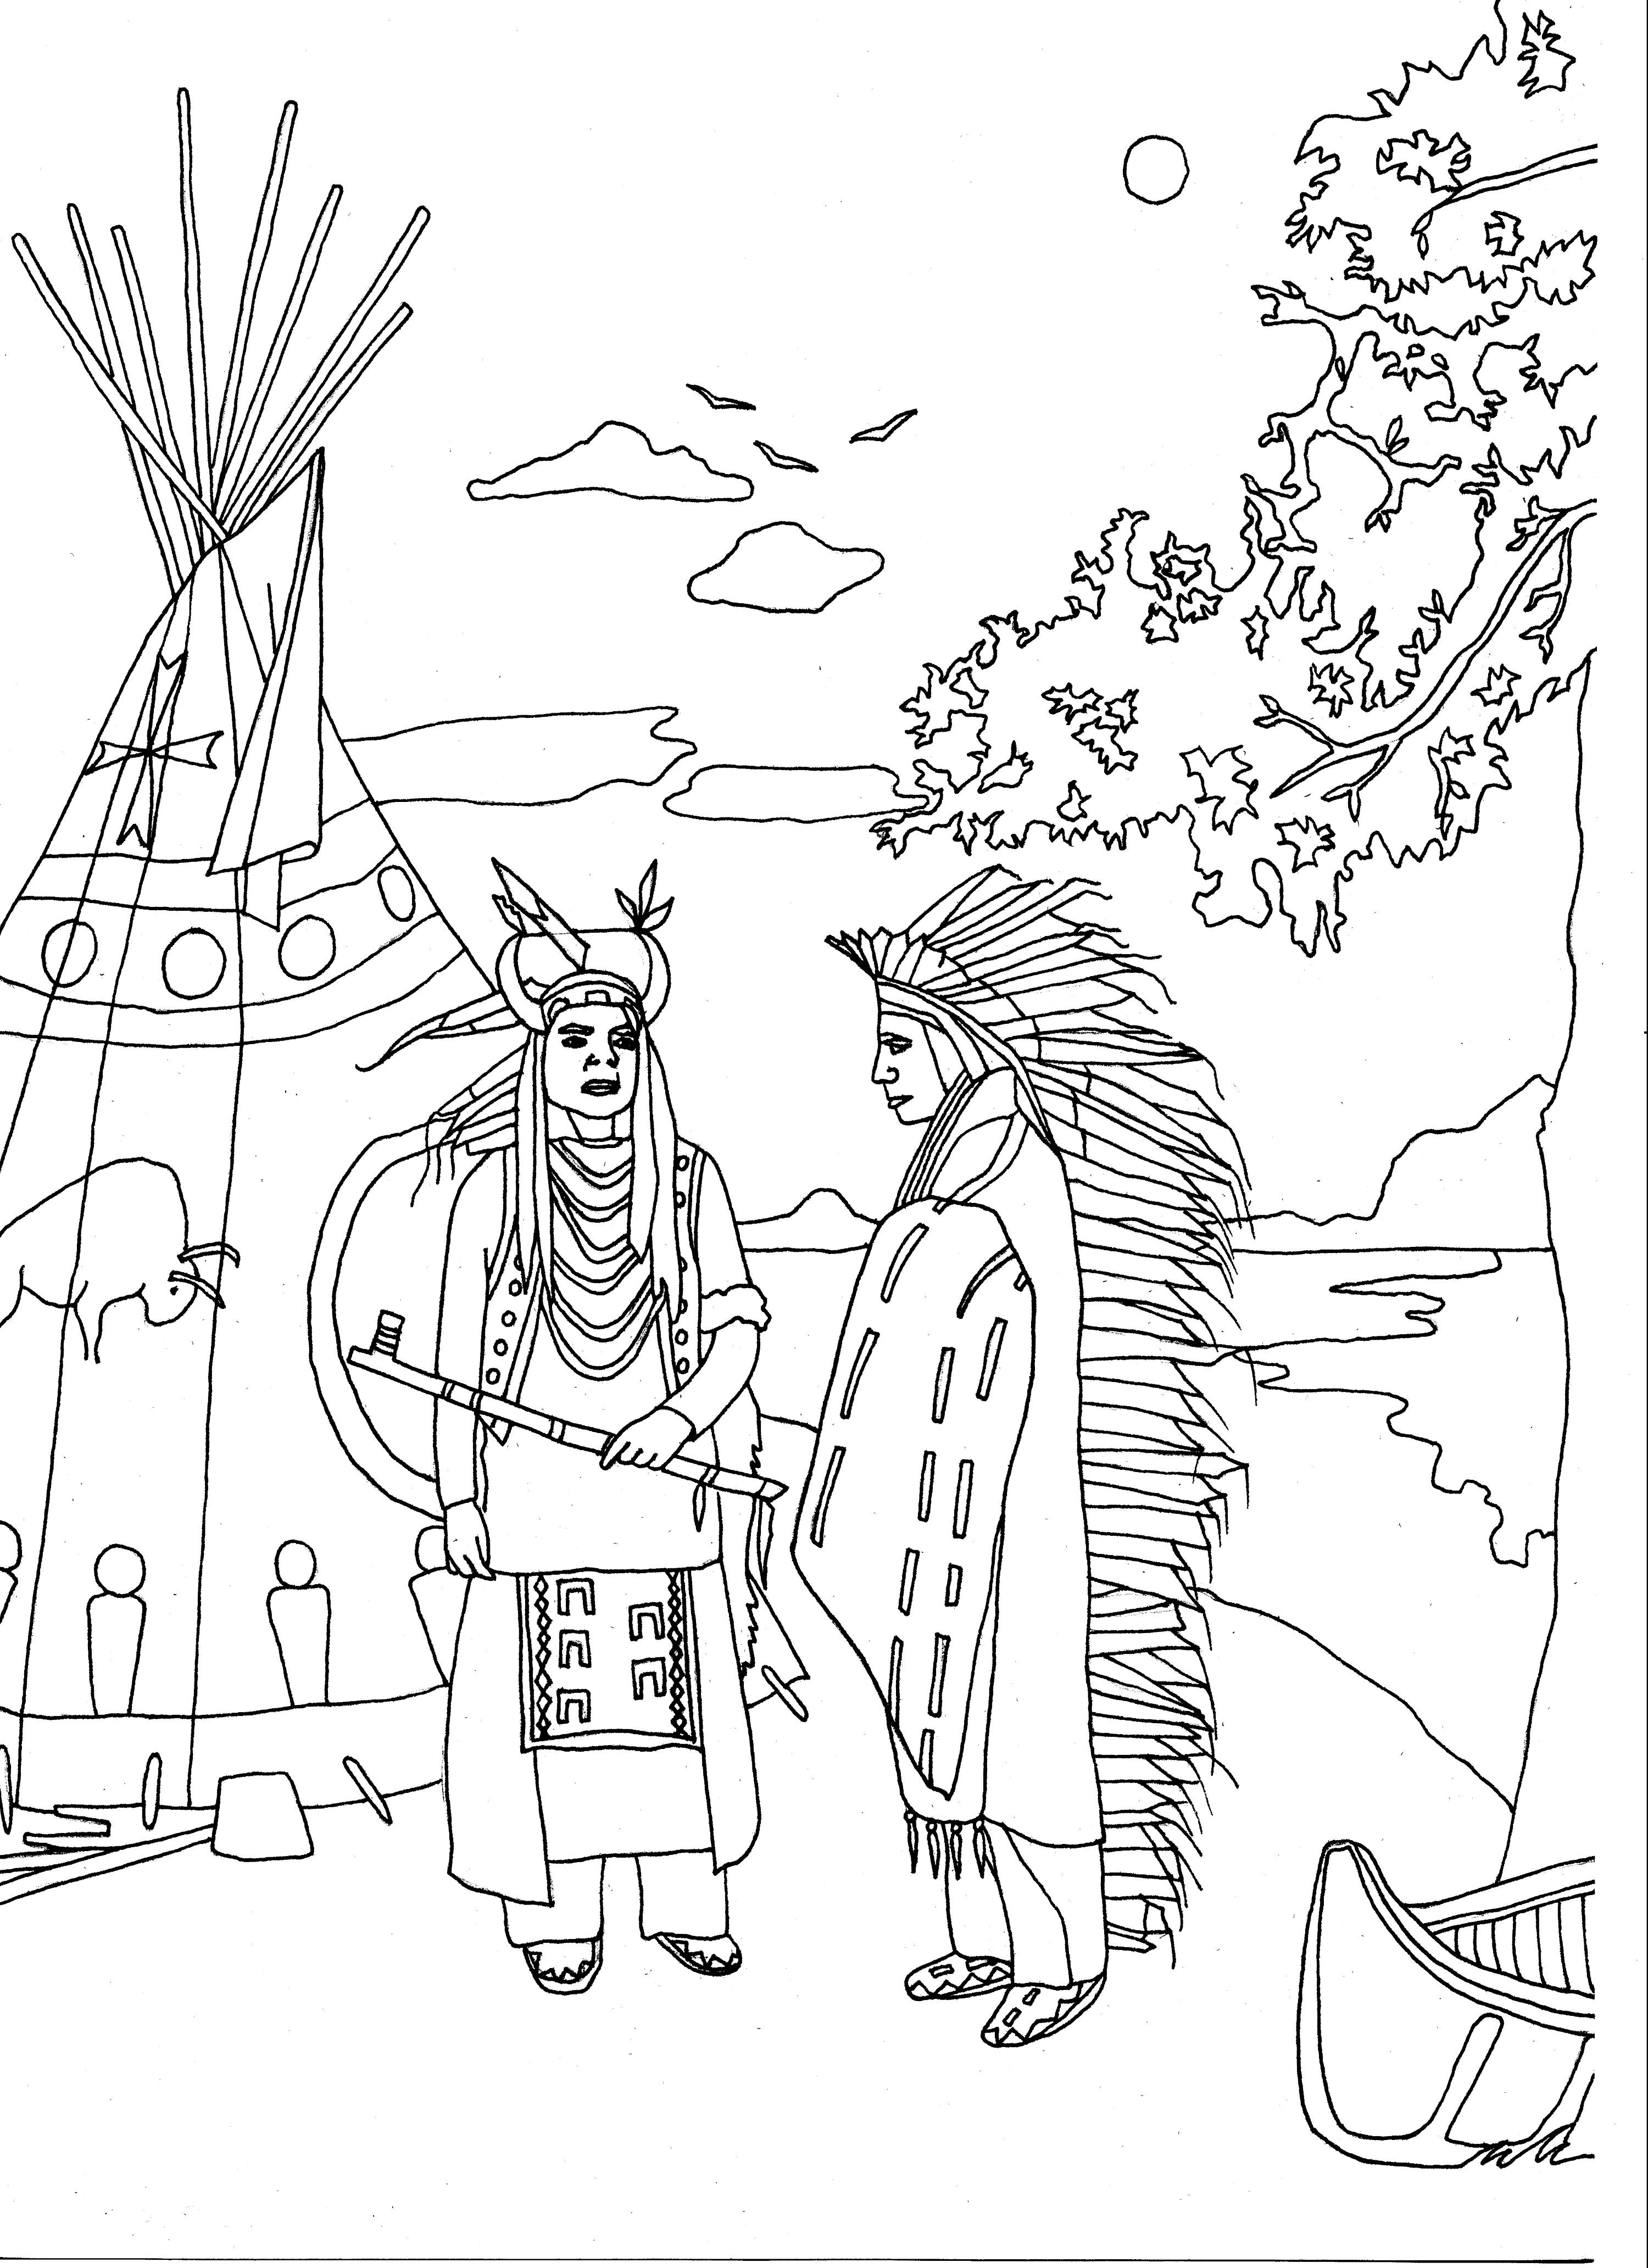 adult coloring pages native american - photo#25